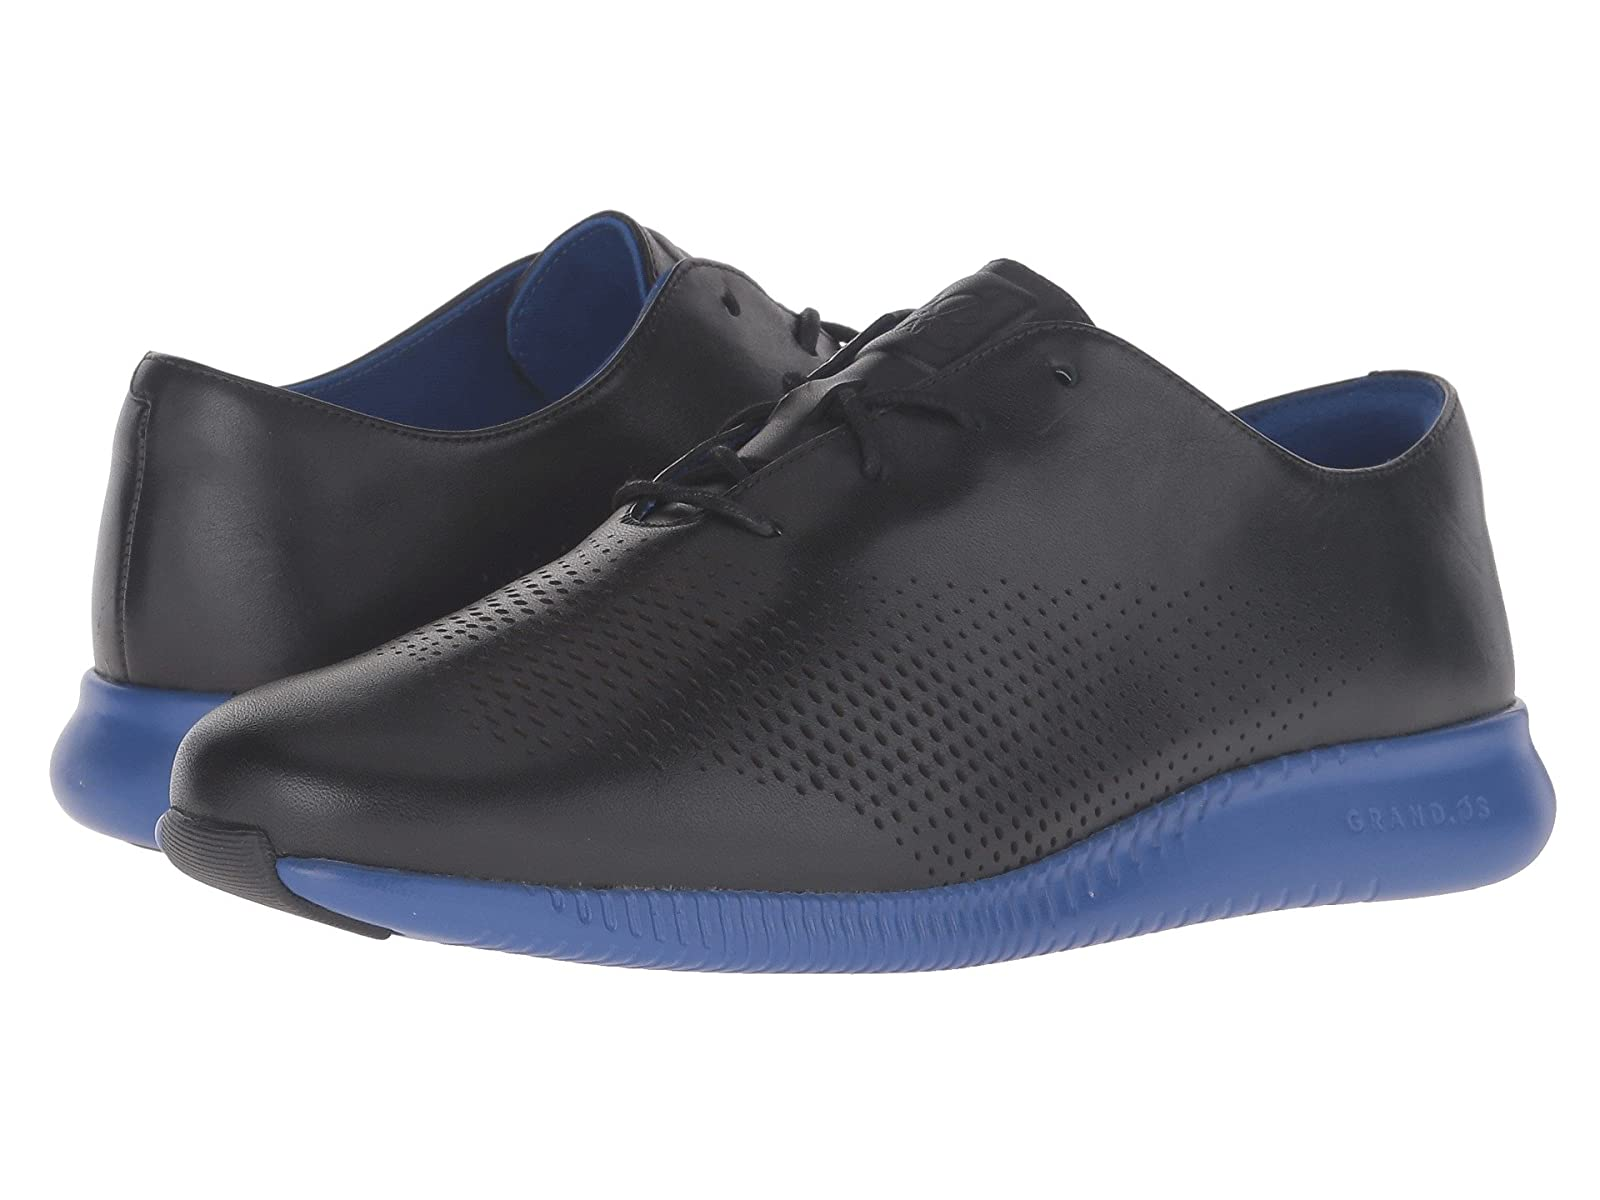 Cole Haan 2.0 Grand Laser Wing OxfordCheap and distinctive eye-catching shoes